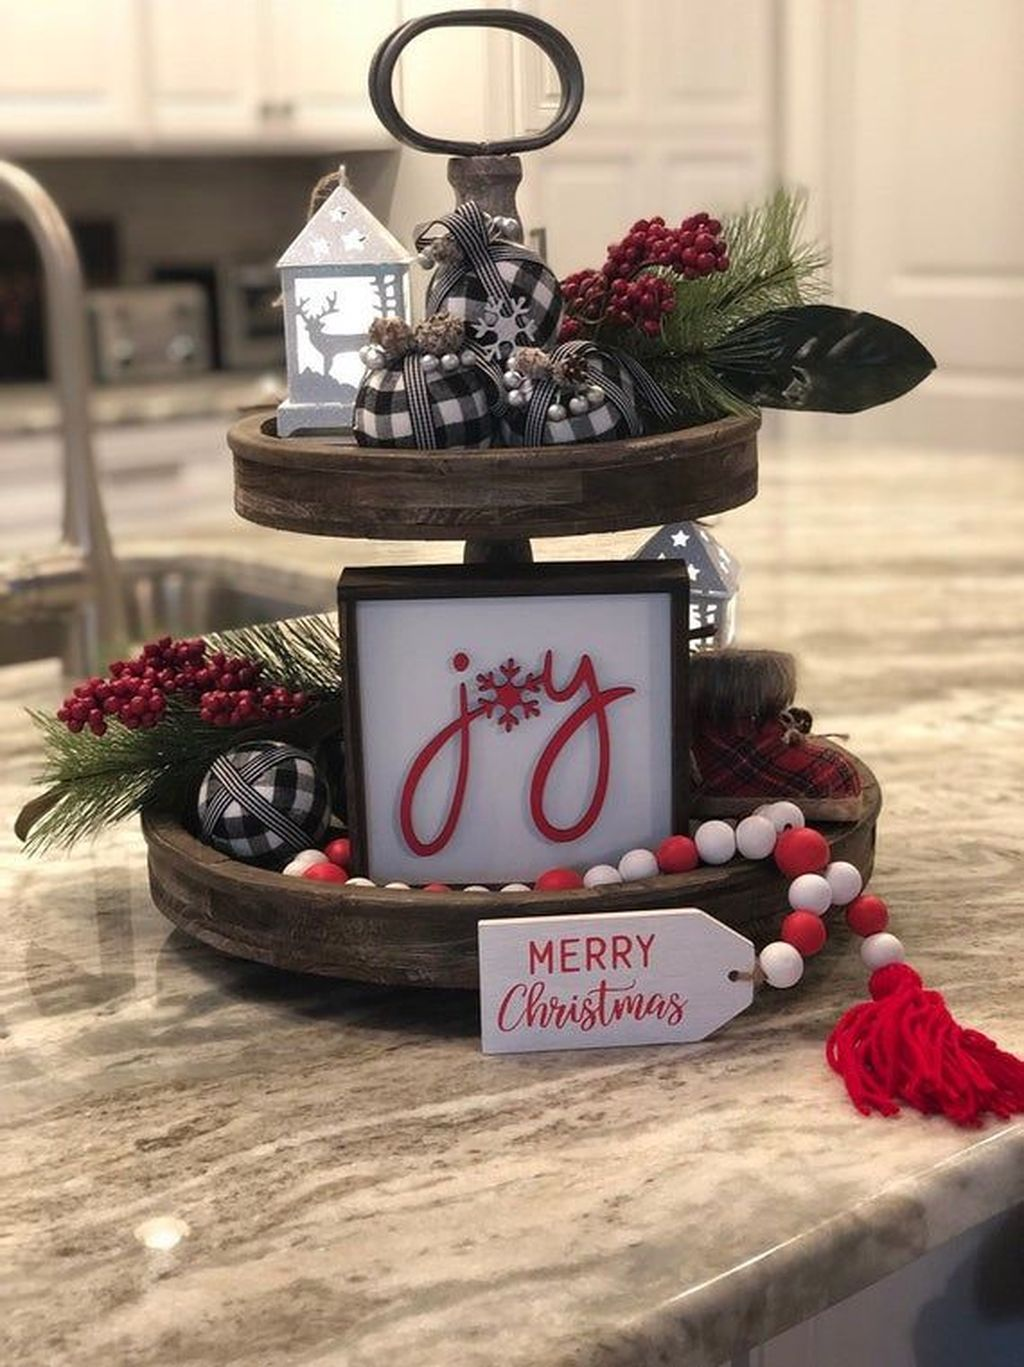 Amazing Christmas Decor For Kitchen Table 02